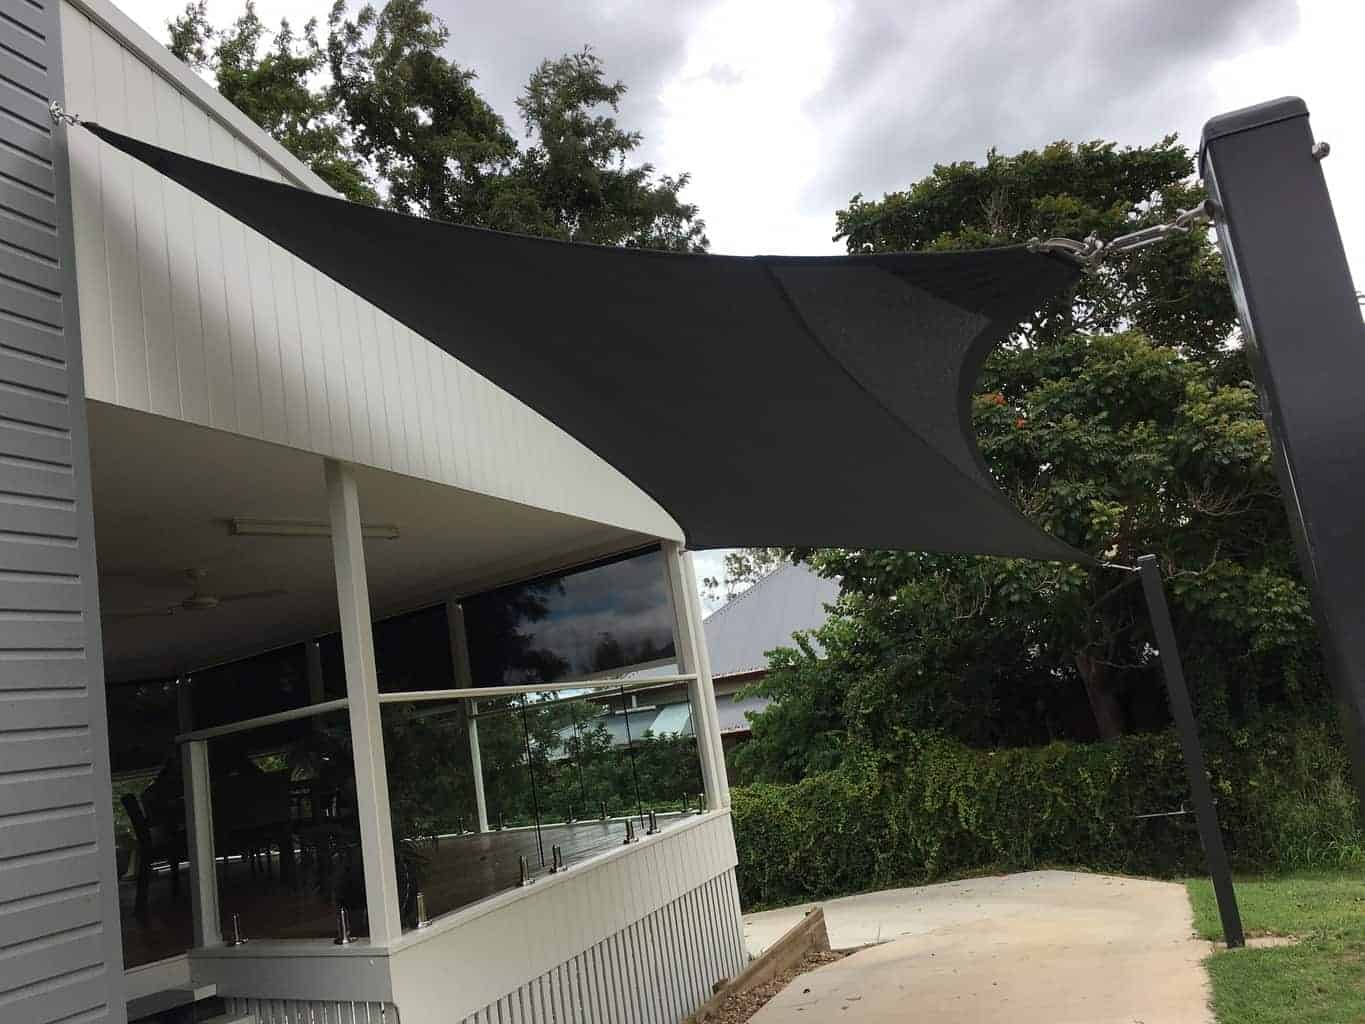 Ipswich- 4 point carport shade sails - Superior Shade Sails